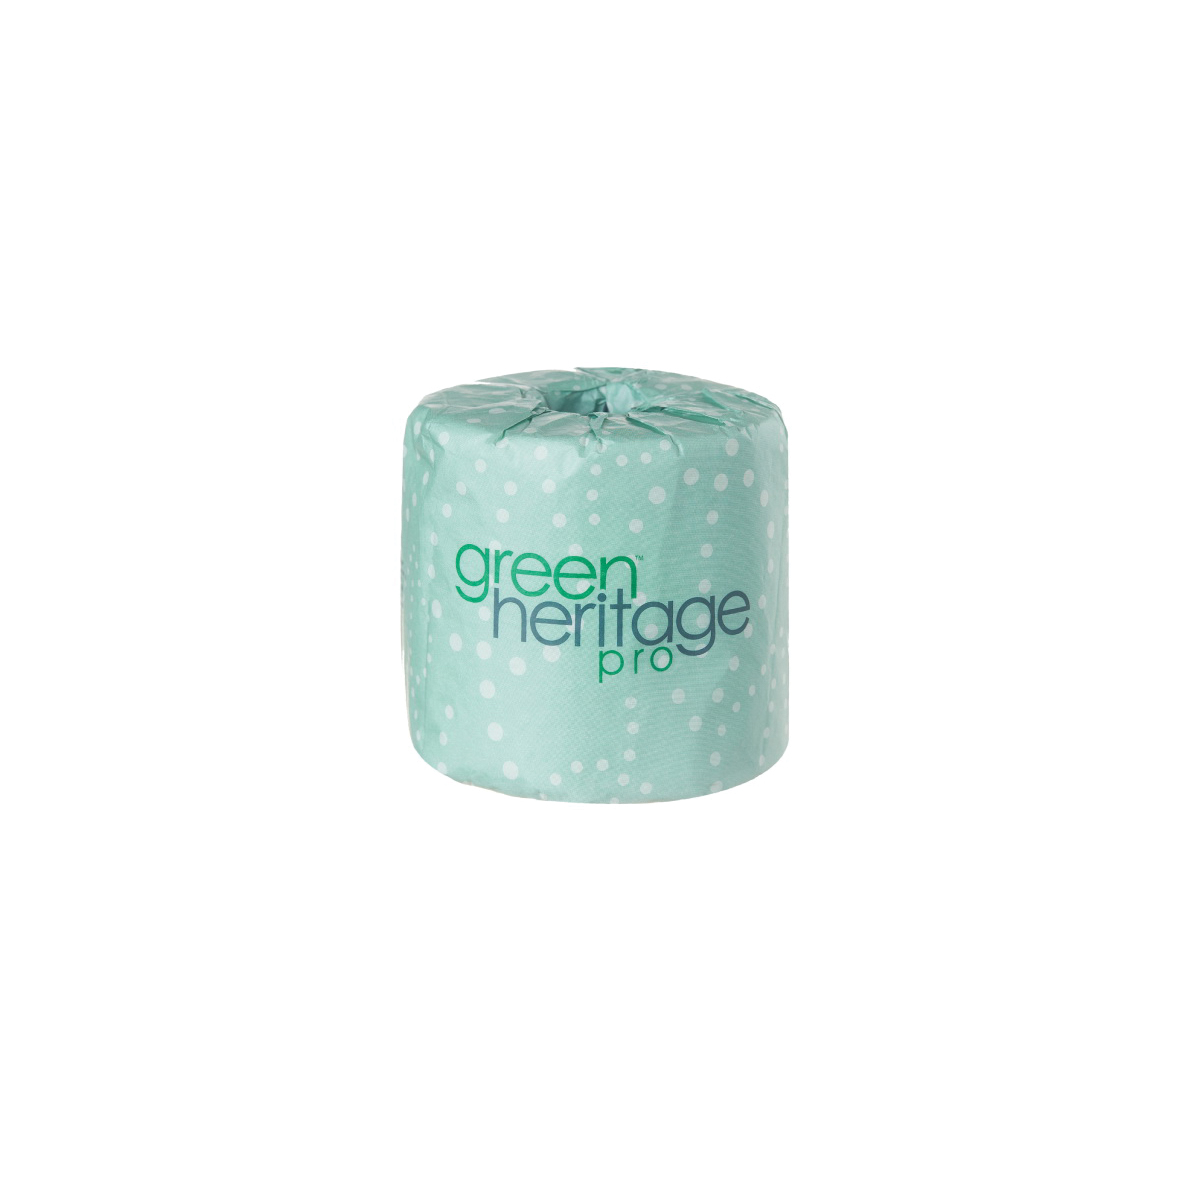 Picture of Green Heritage Pro AT-115 Bathroom Tissue, 4 x 3.1 in Sheet, 260.4 ft L Roll, 1 -Ply, 96